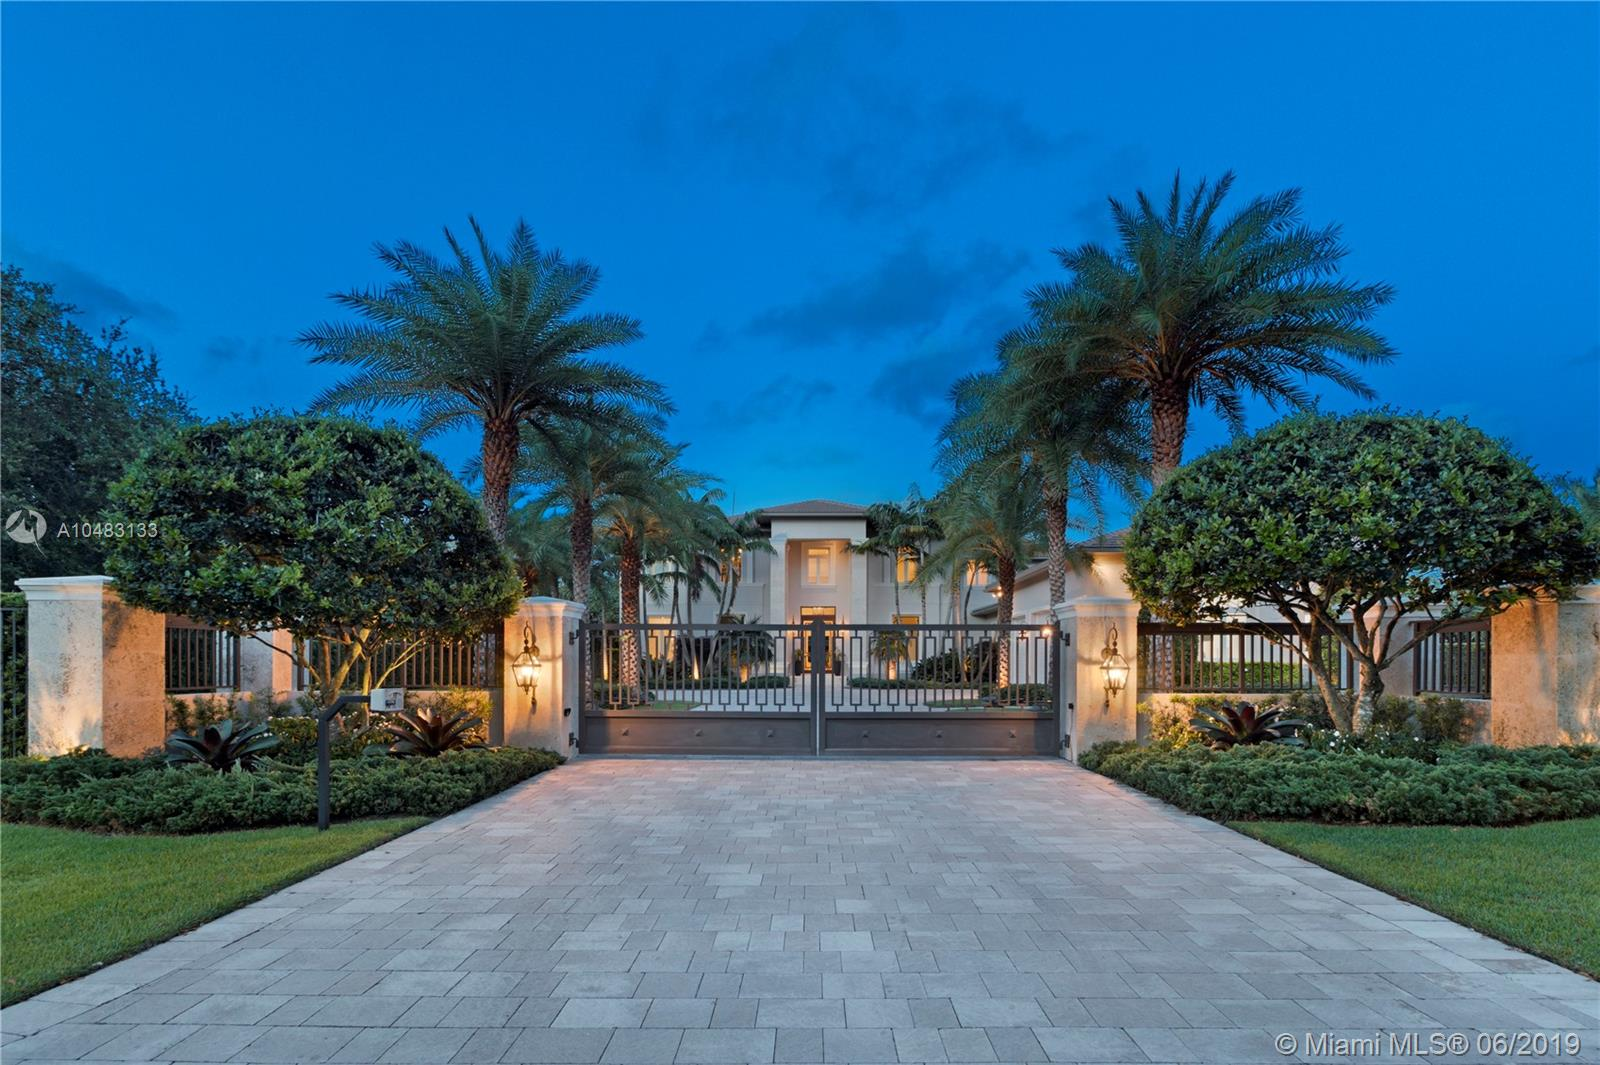 8975 SW 63rd Ct, Kendall, Florida